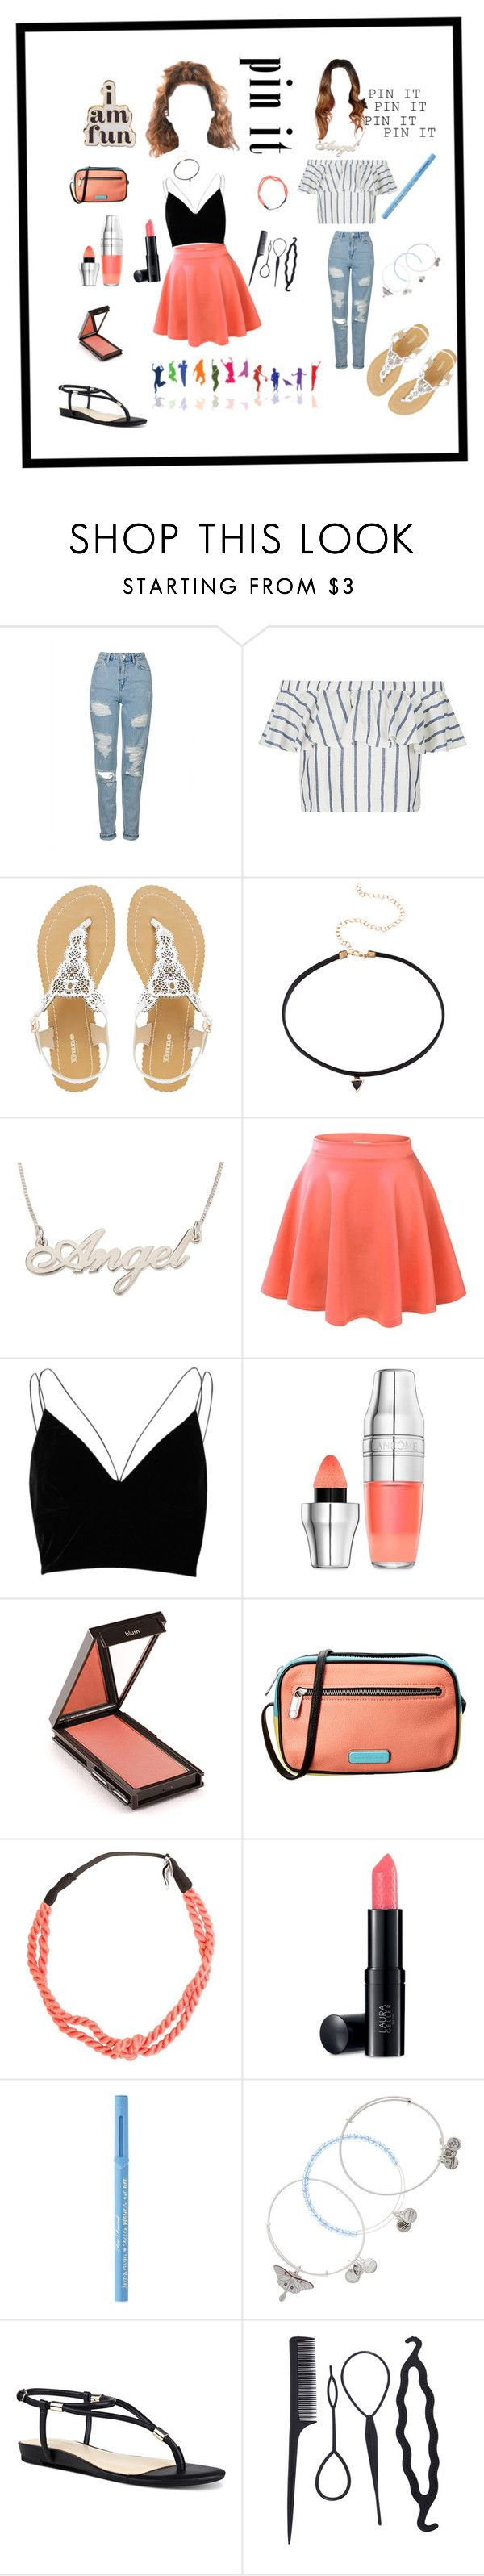 """Pin it"" by saranda-zogaj ❤ liked on Polyvore featuring Topshop, Dune, River Island, Lancôme, Jouer, Marc by Marc Jacobs, Krochet Kids, Laura Geller, Too Faced Cosmetics and Alex and Ani"